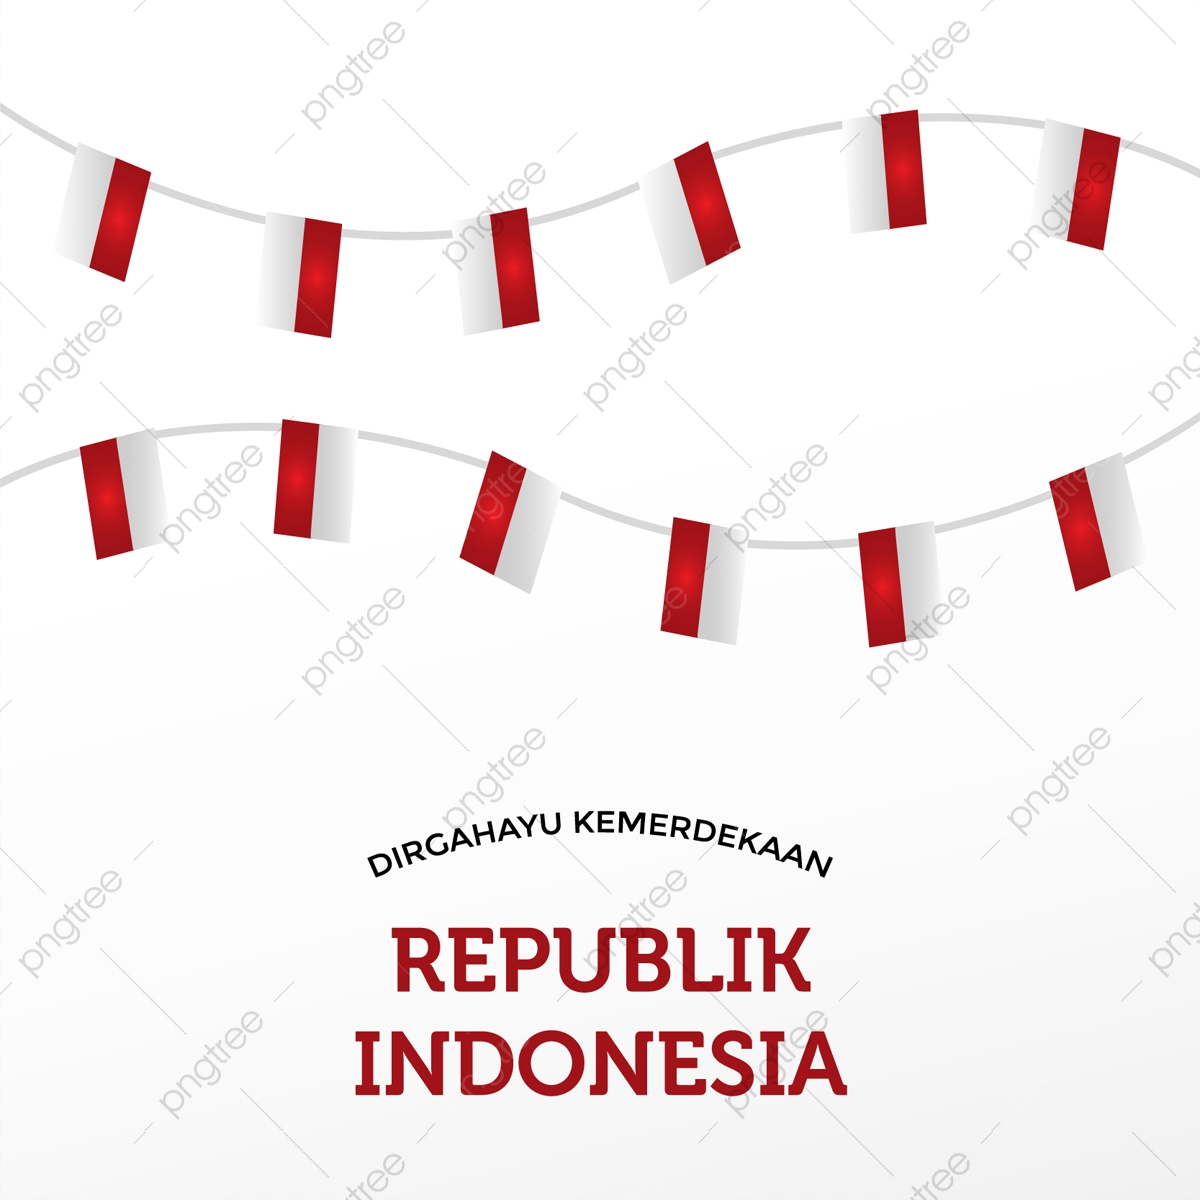 decoration small flag on indonesia independence day flag icons small icons day icons png and vector with transparent background for free download https pngtree com freepng decoration small flag on indonesia independence day 5330517 html